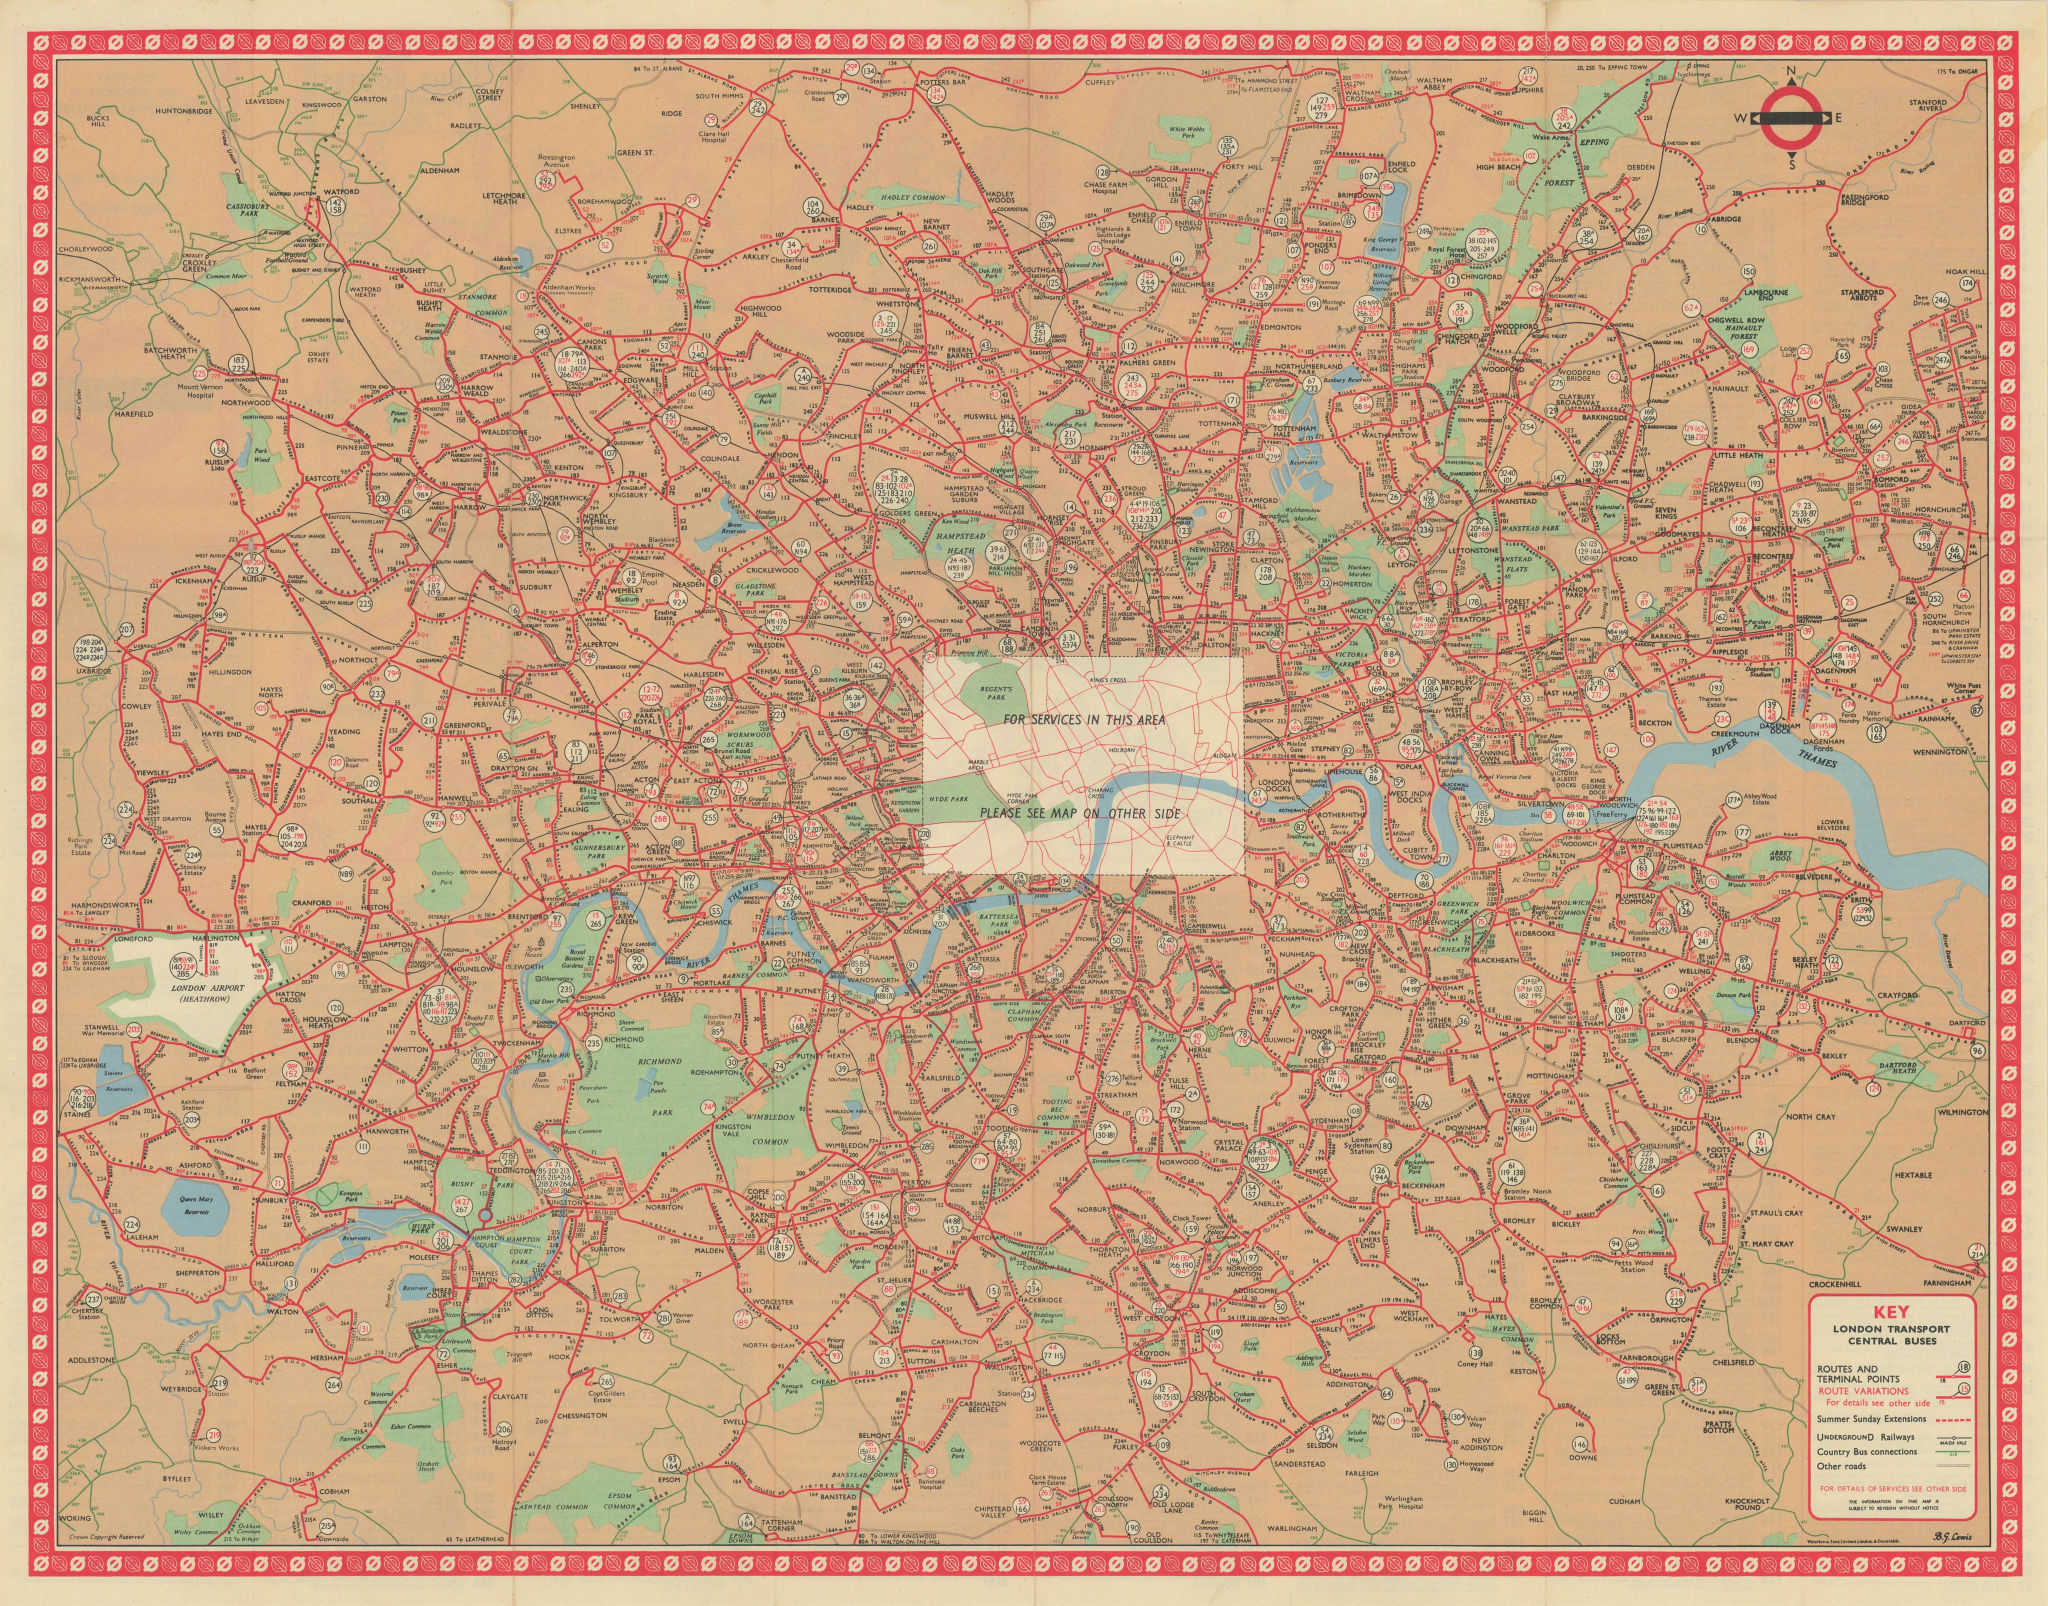 London Transport Central Buses map and list of routes. LEWIS #3R 1962 old